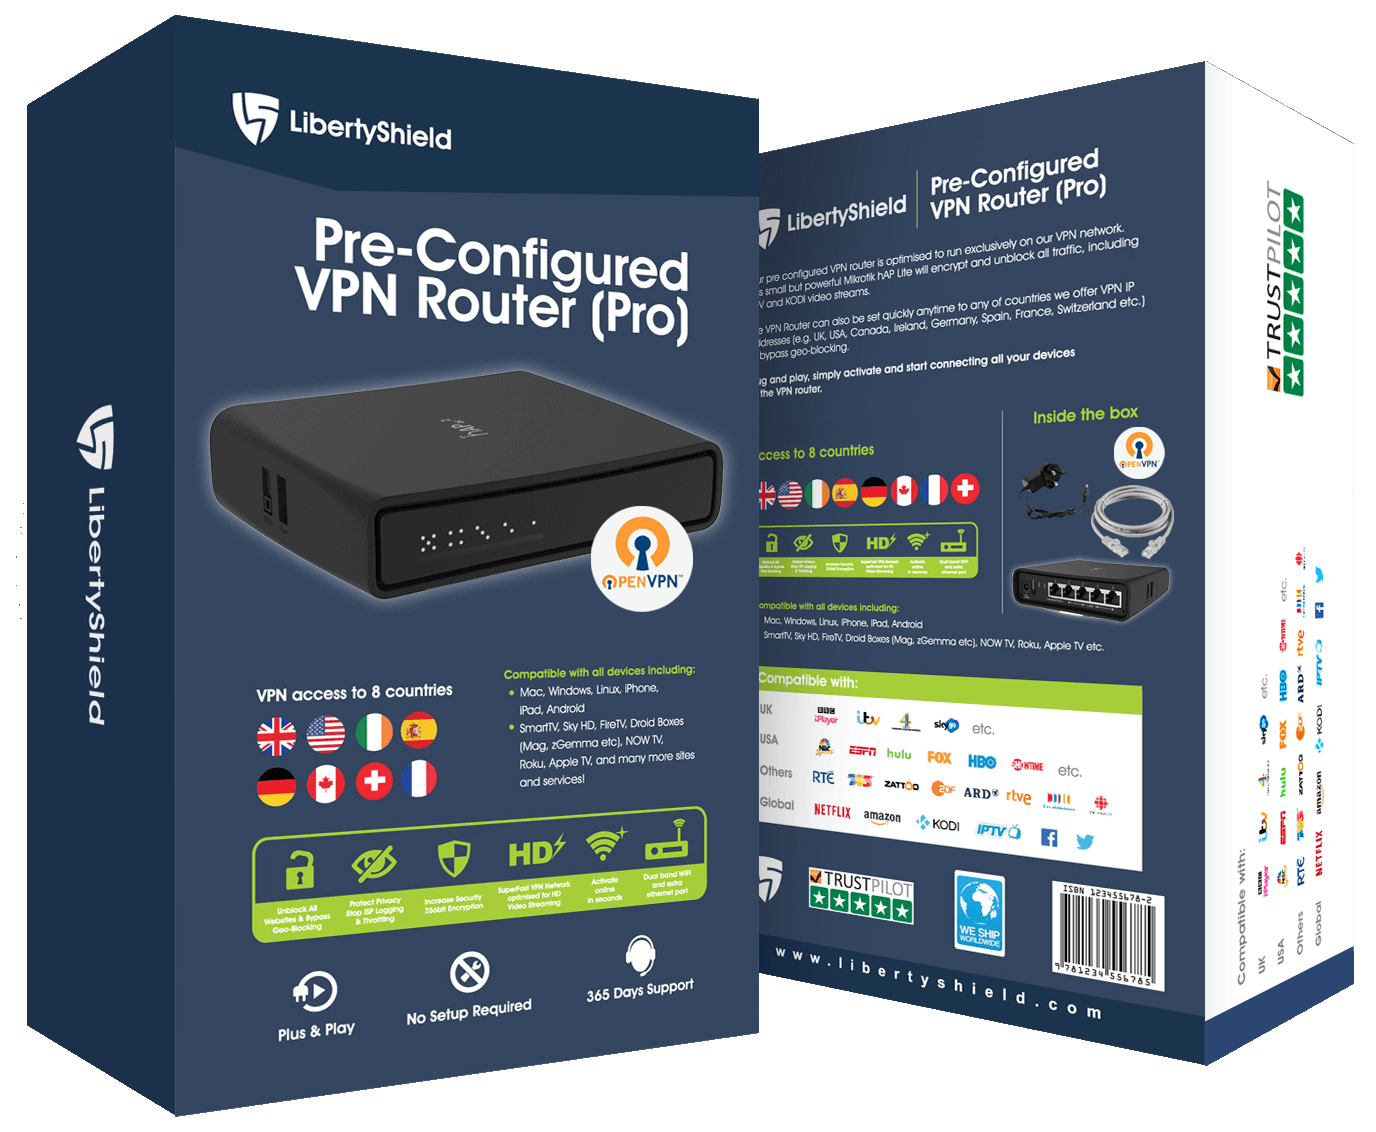 PRO : Pre-Configured VPN Router